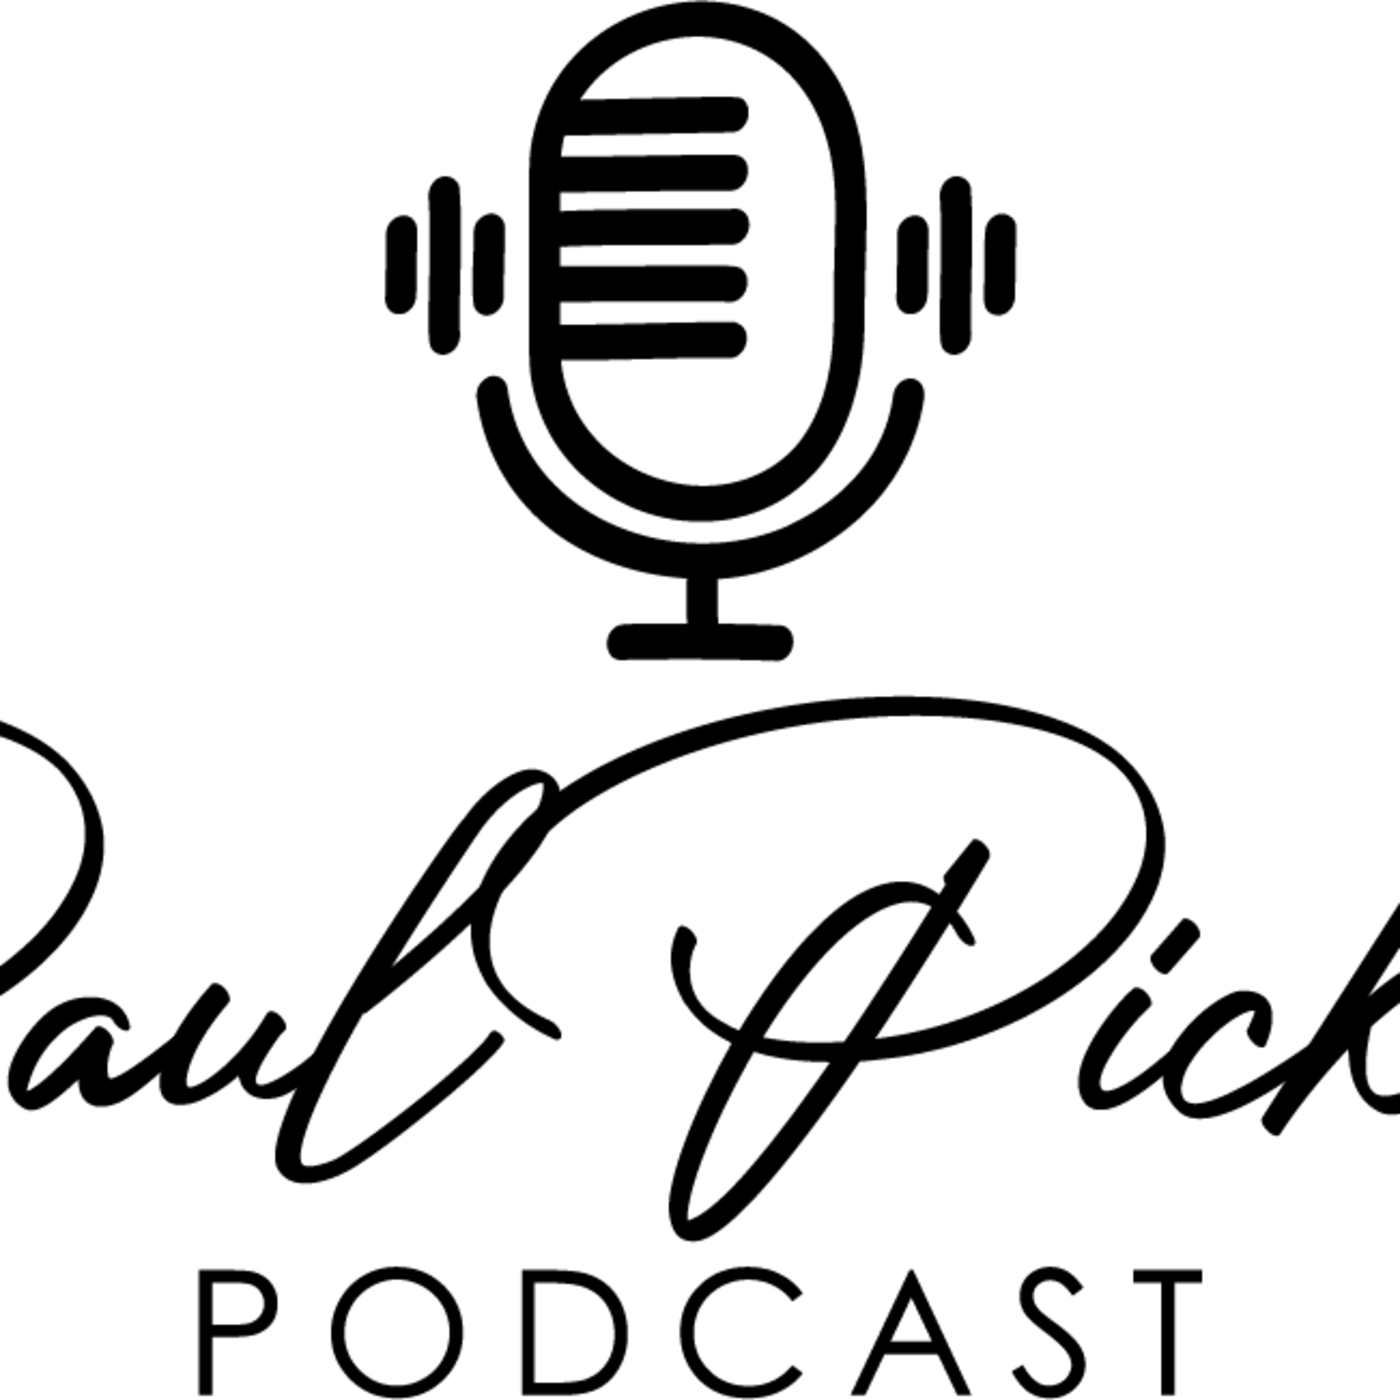 A highlight from 43: Promo Palace LLC Vlog 43 - Consistency is the key